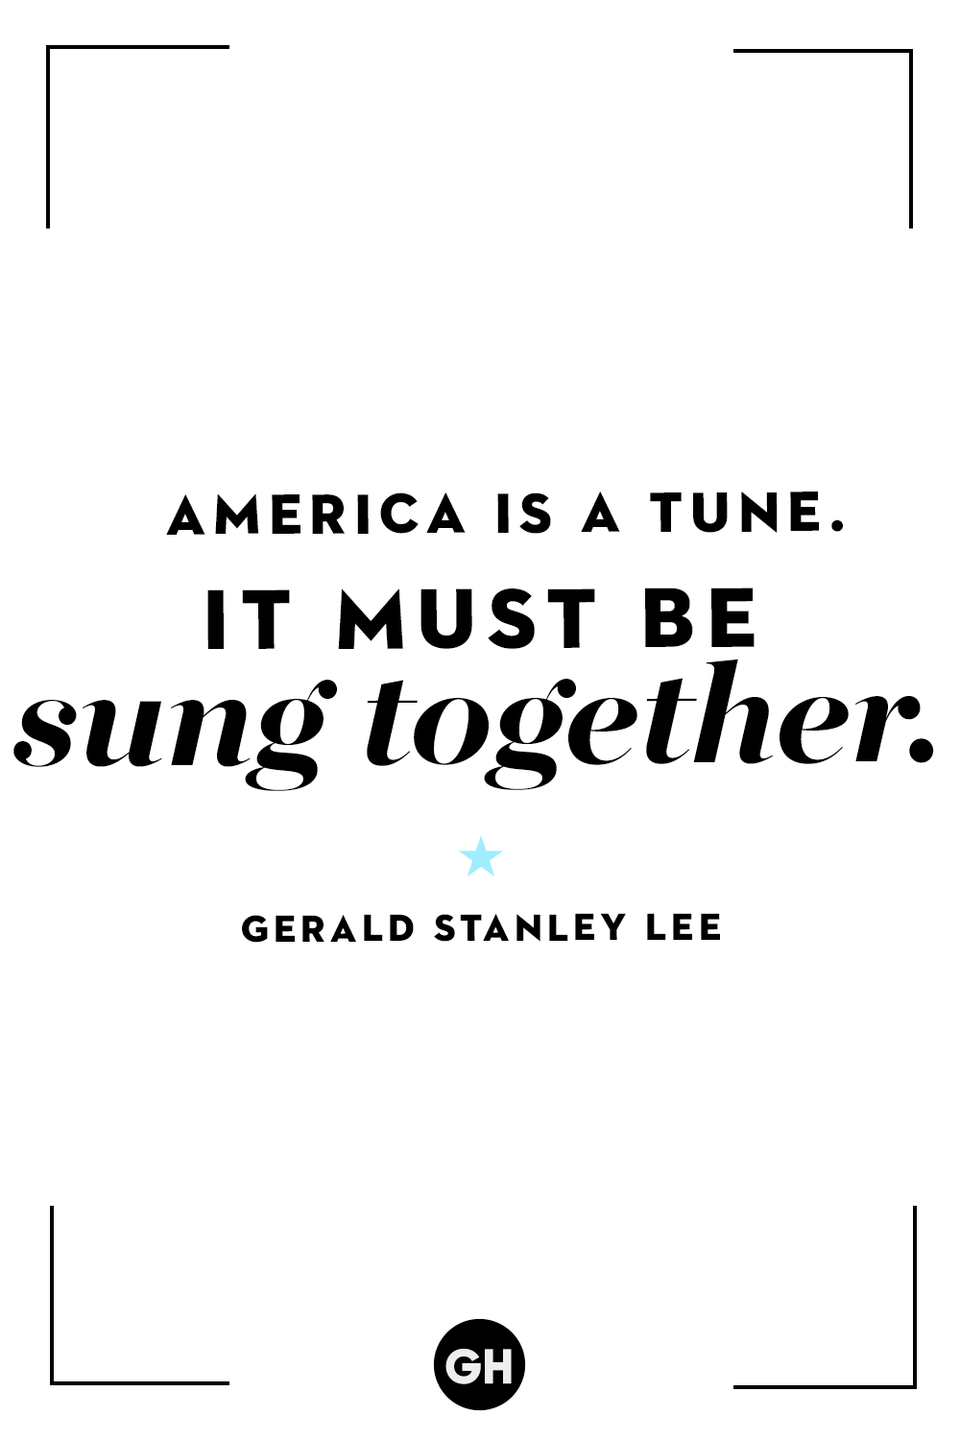 <p>America is a tune. It must be sung together.</p>